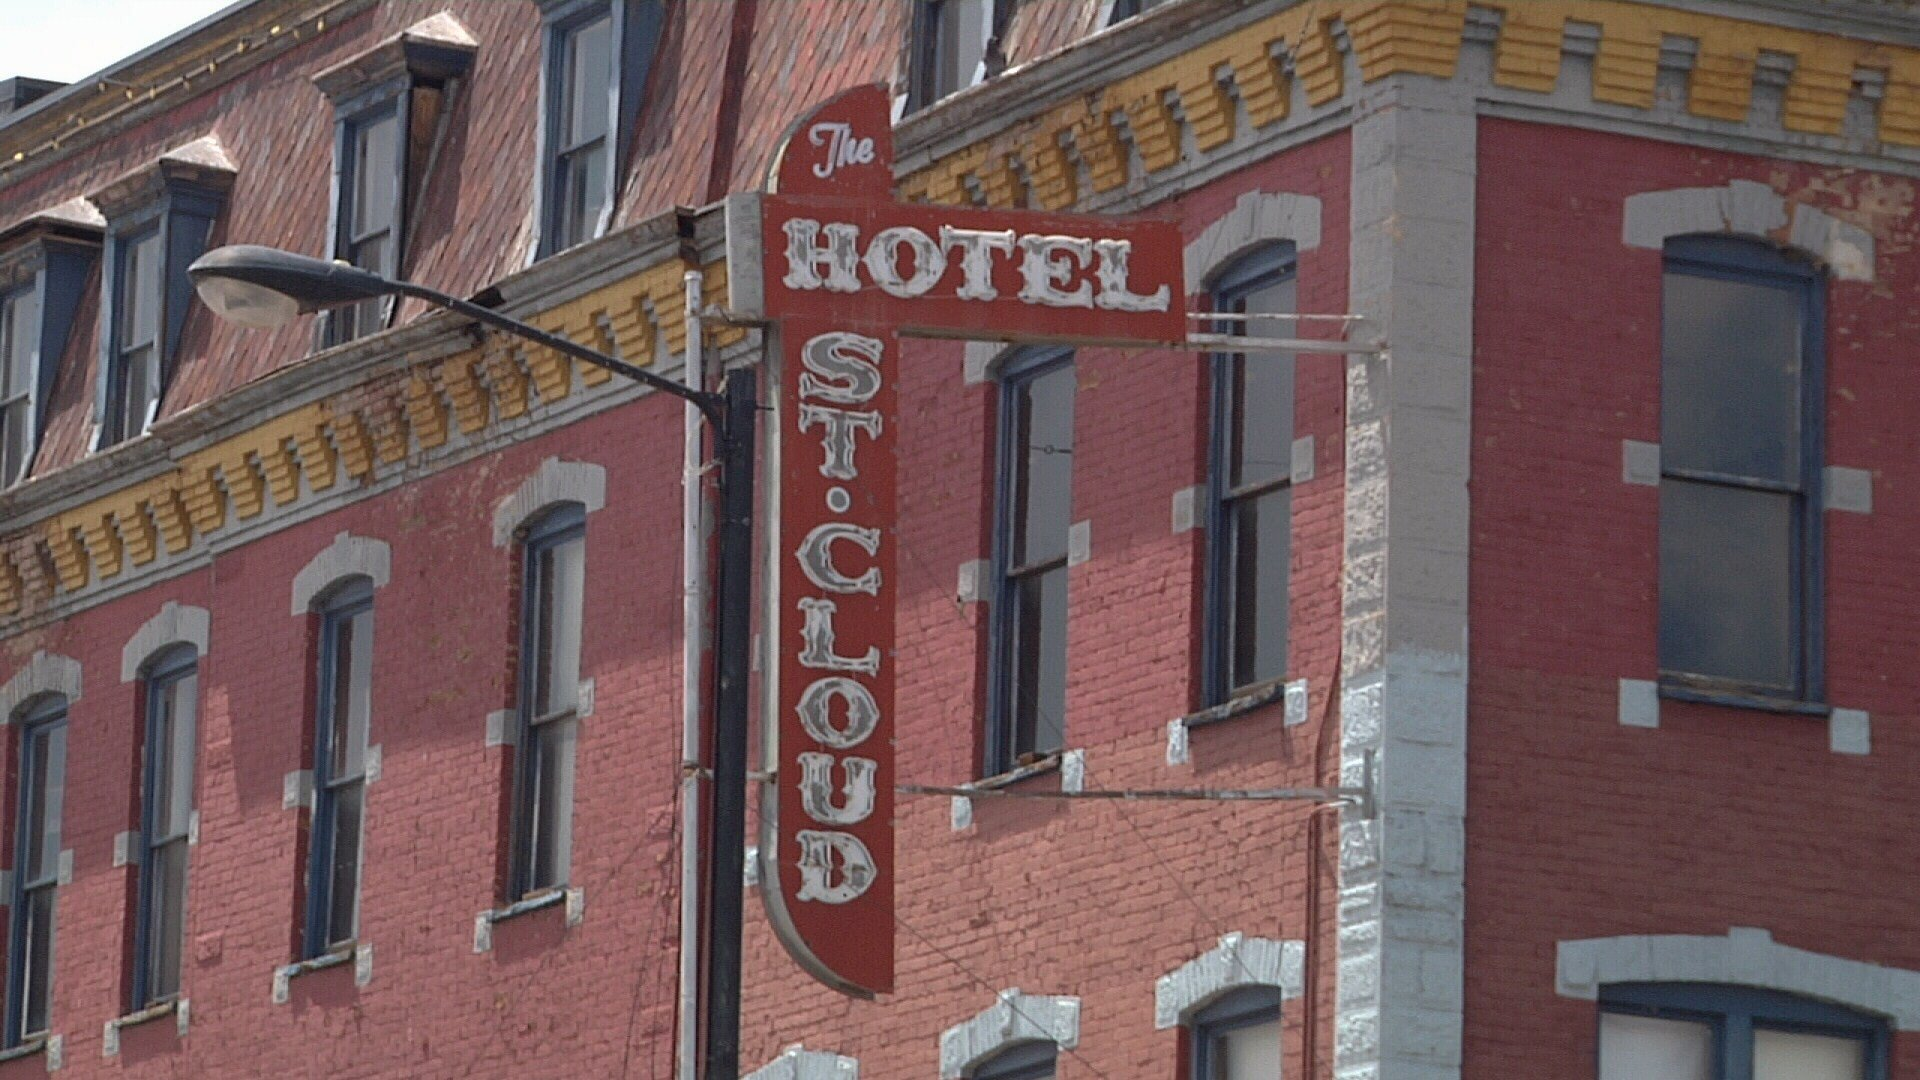 Hotel St. Cloud off of Main St. in Canon City on July 18, 2017.